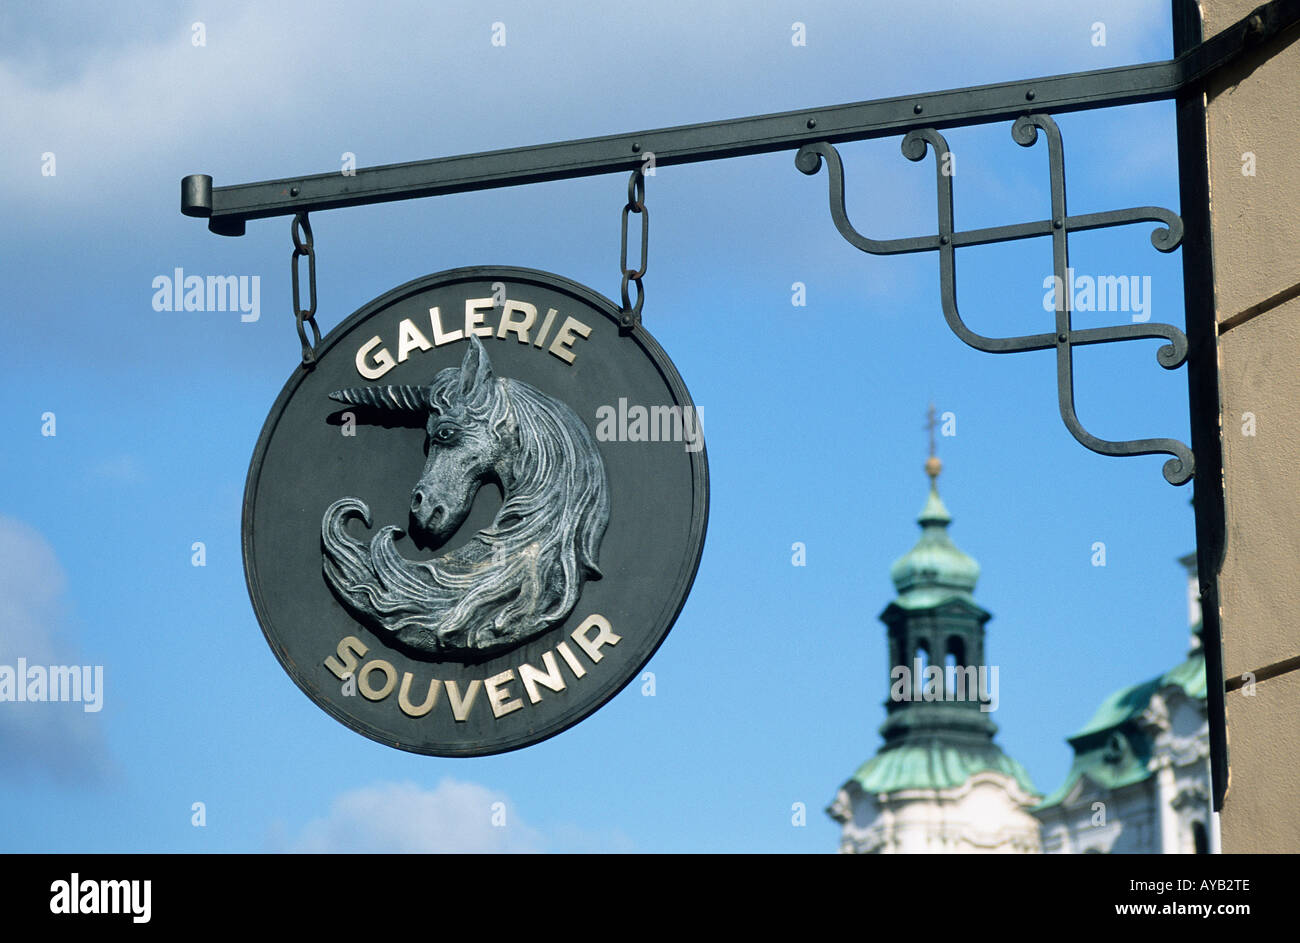 6ca213c391eb Gallery sign Celetna Ulice a street in the Old Town or Stare Mesto - Stock  Image